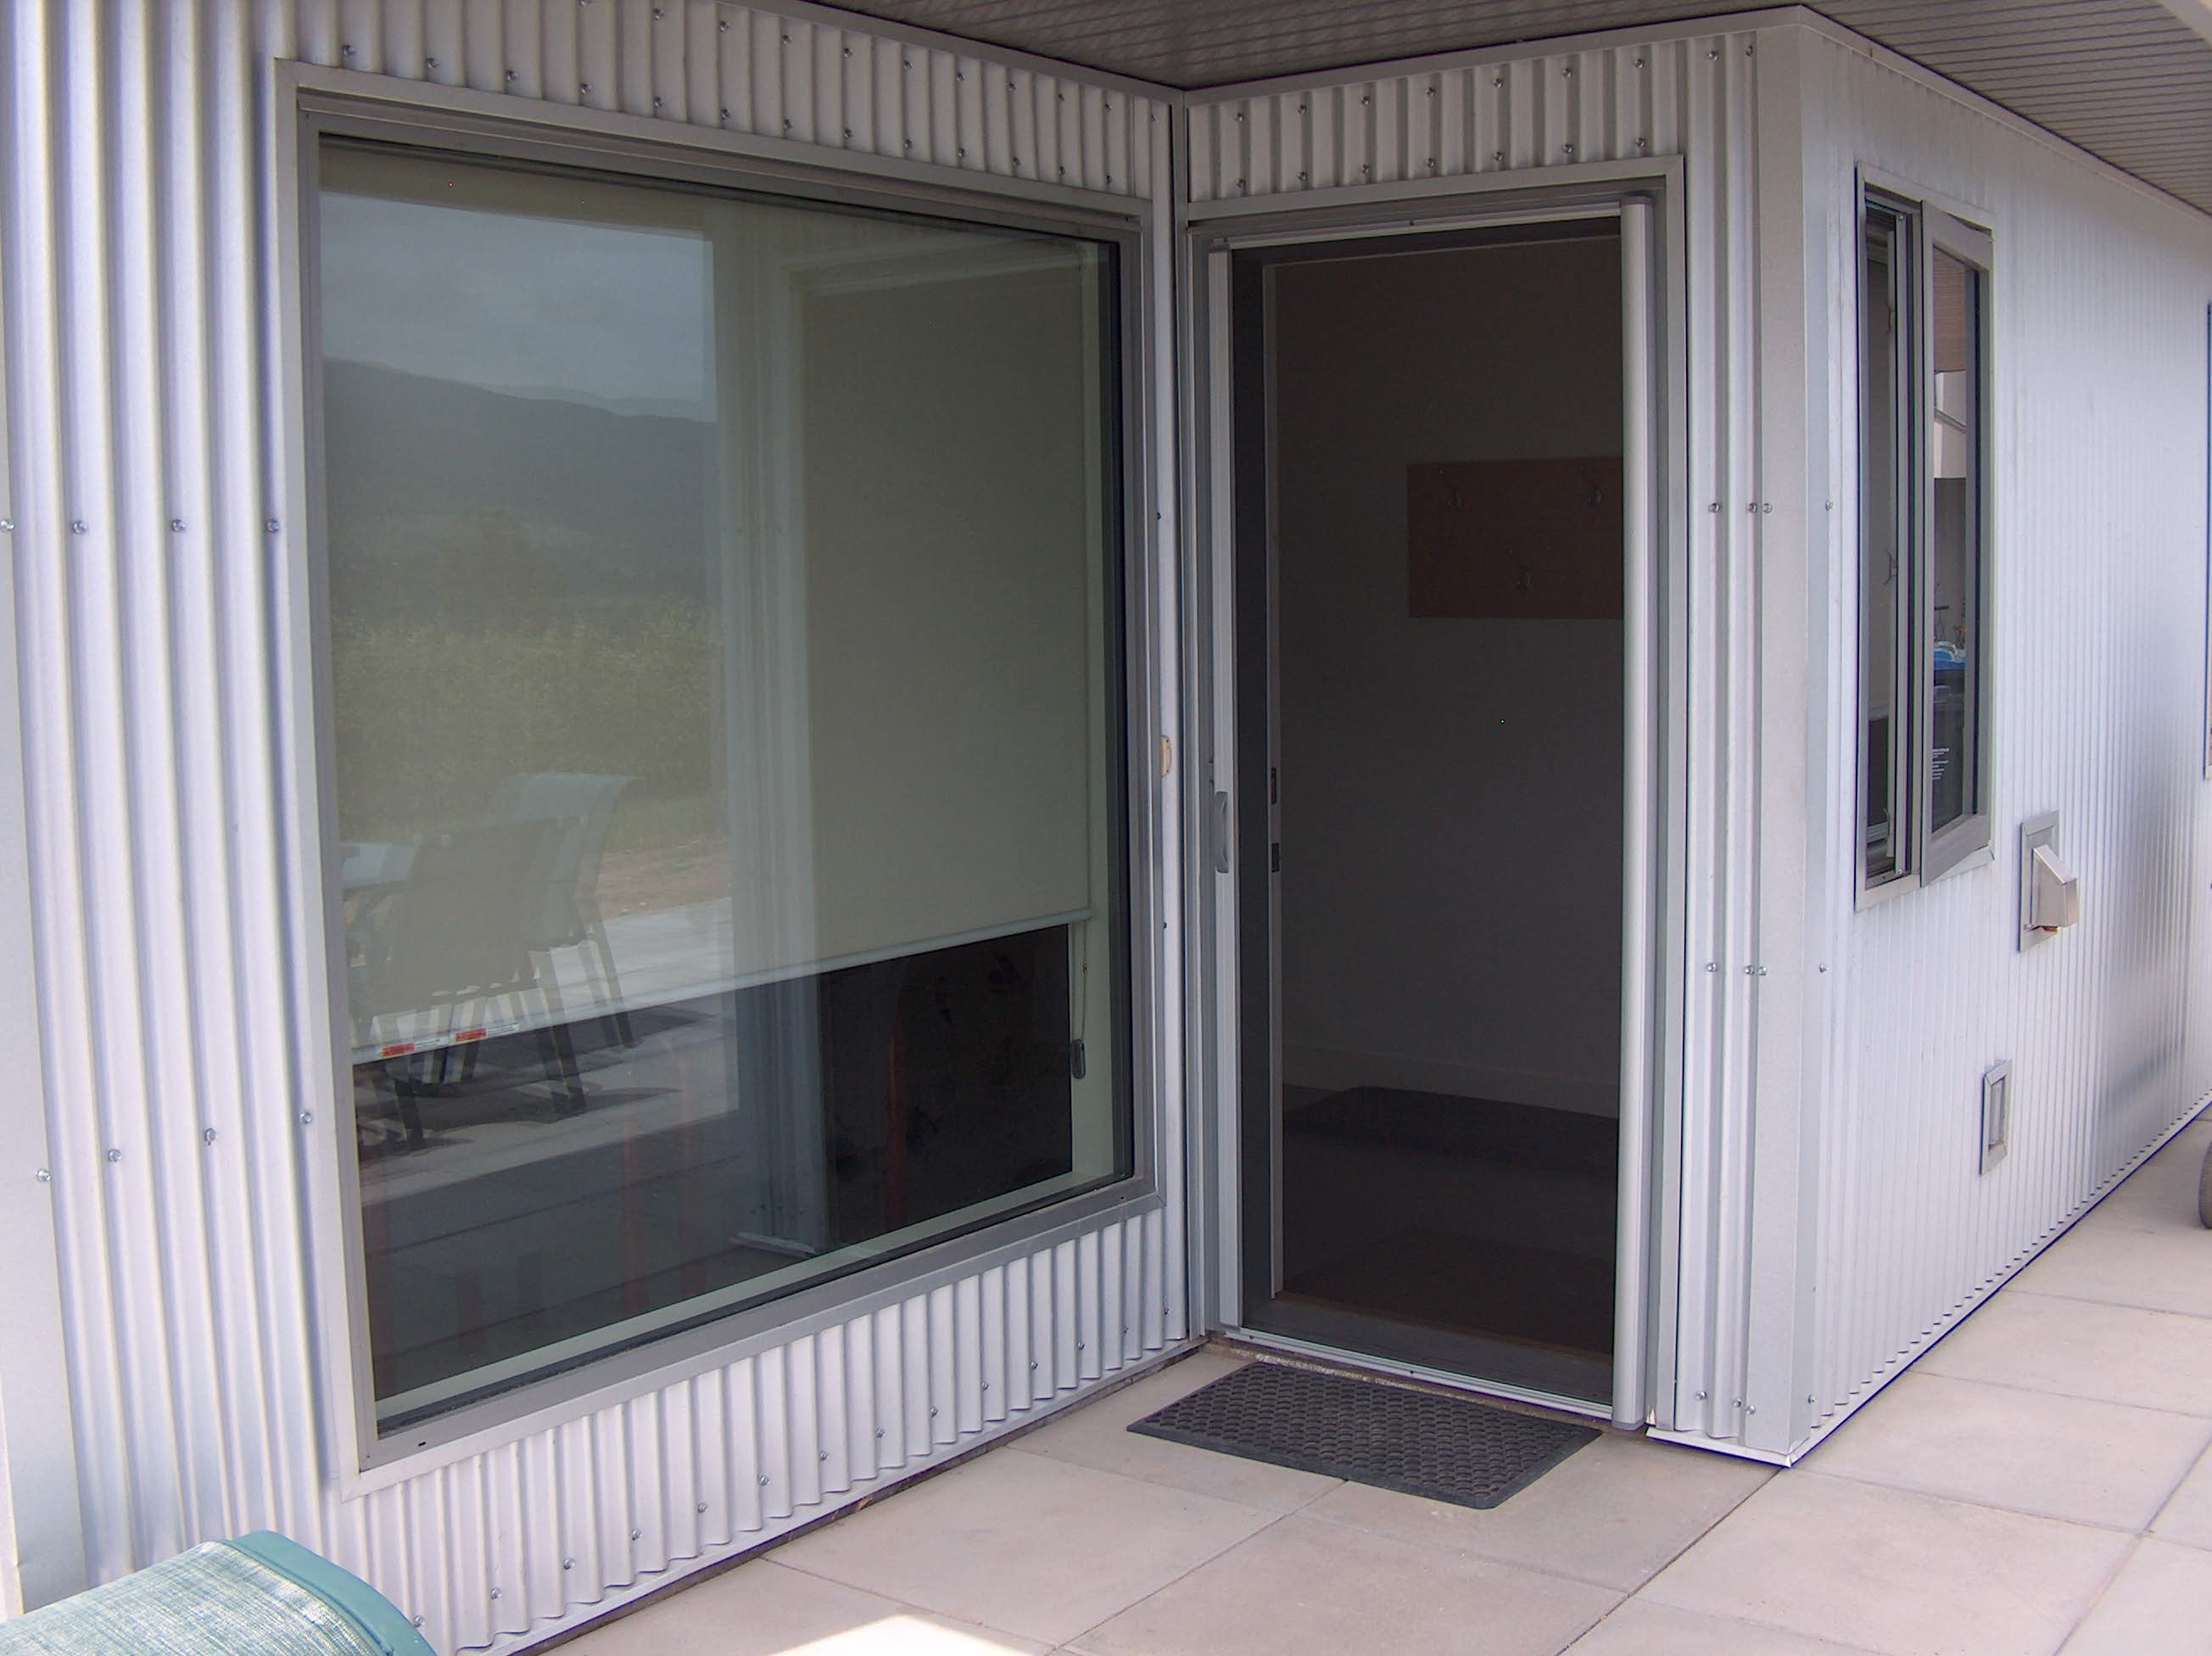 Retractable Screen Annodized Closed | Okanagan Awnings and ...